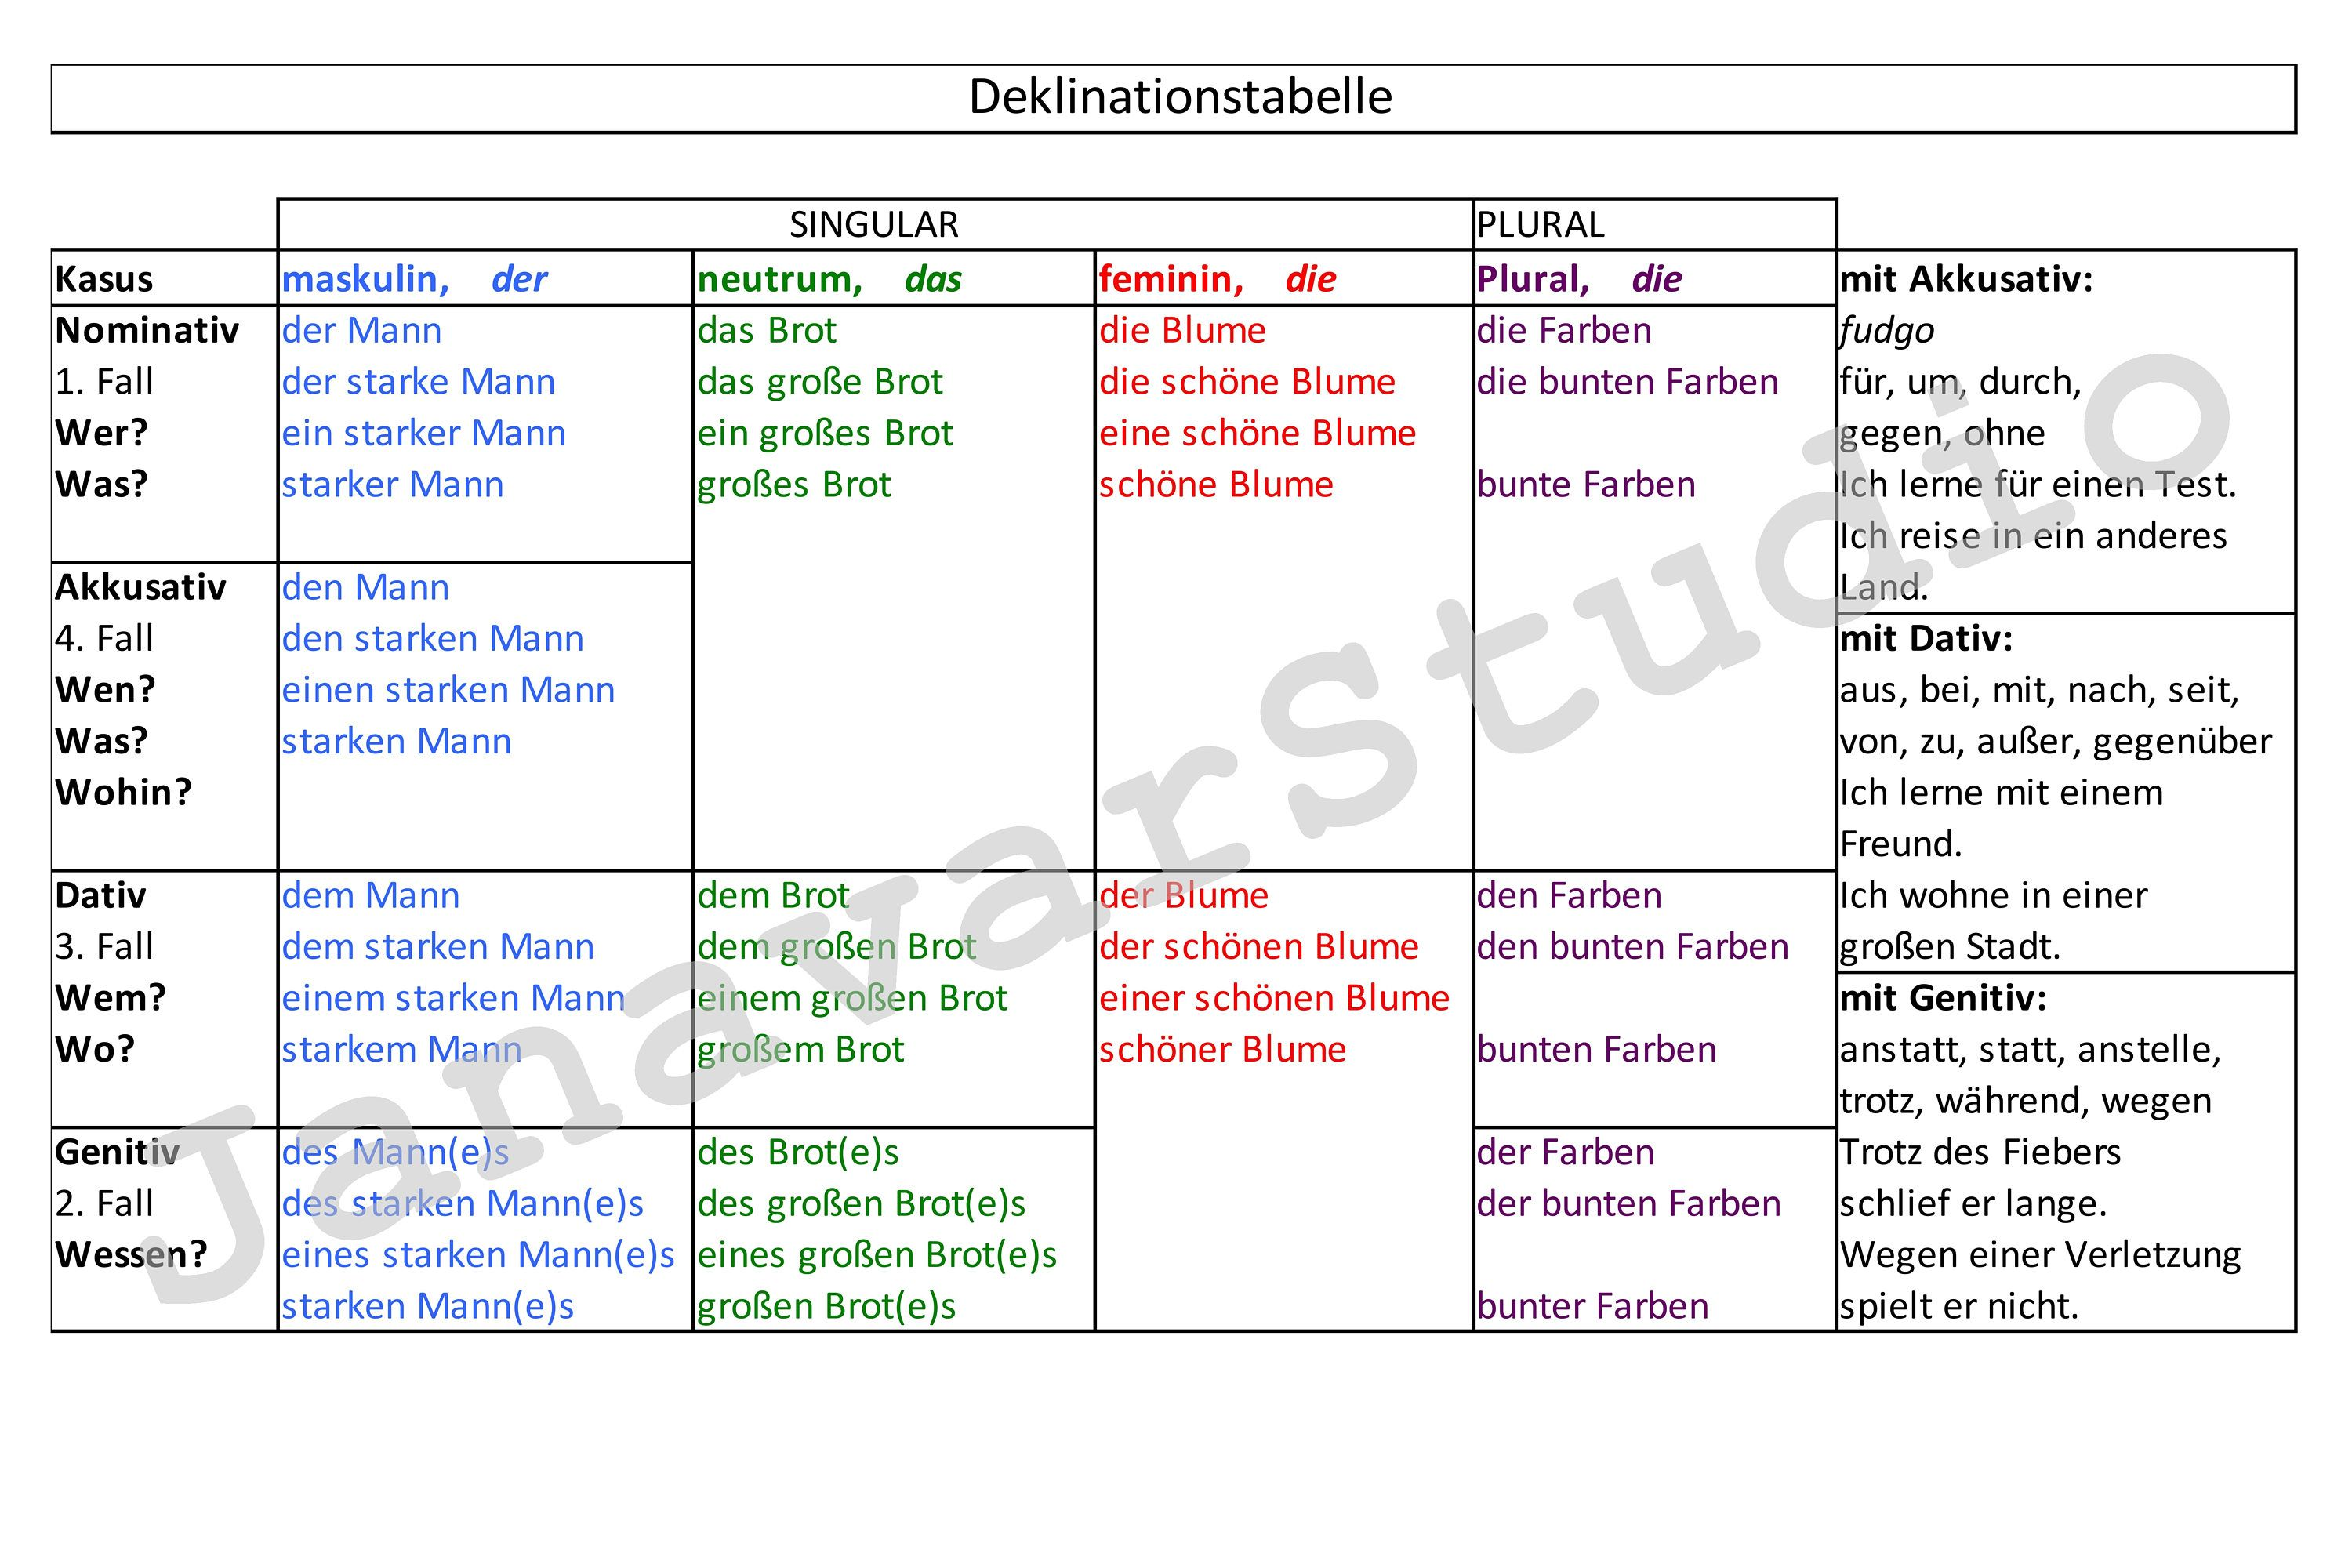 Cases in German: description, declination table for cases 91